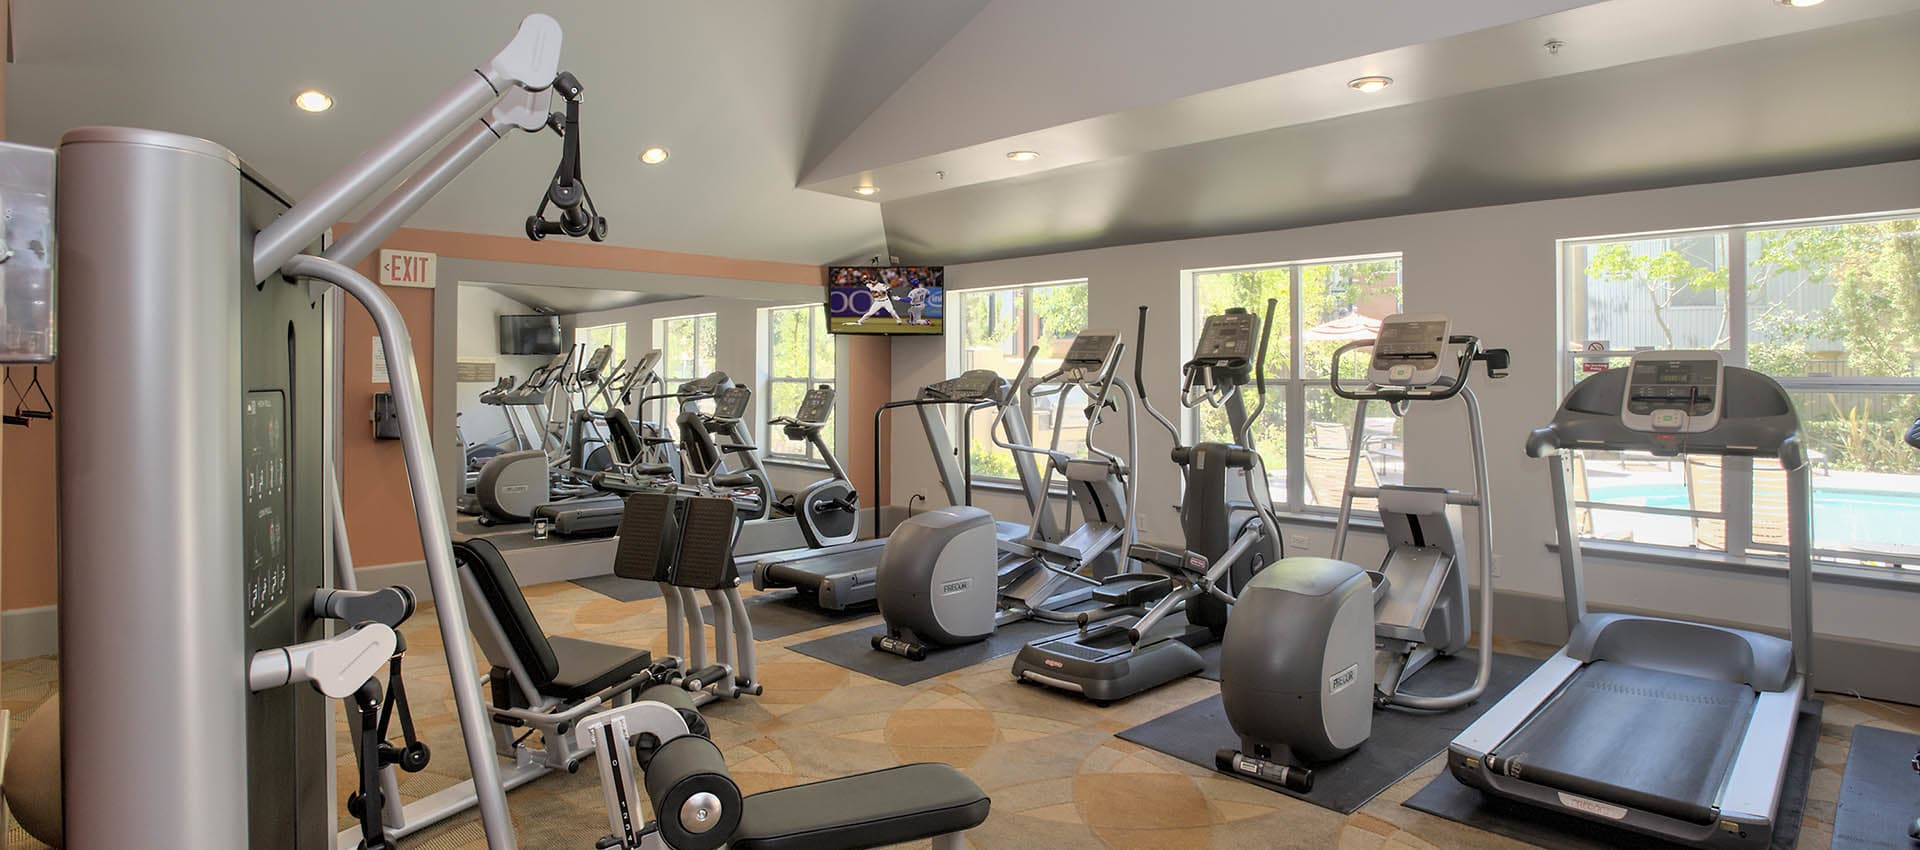 Well Equipped Fitness Center at Azure Apartment Homes in Petaluma, California